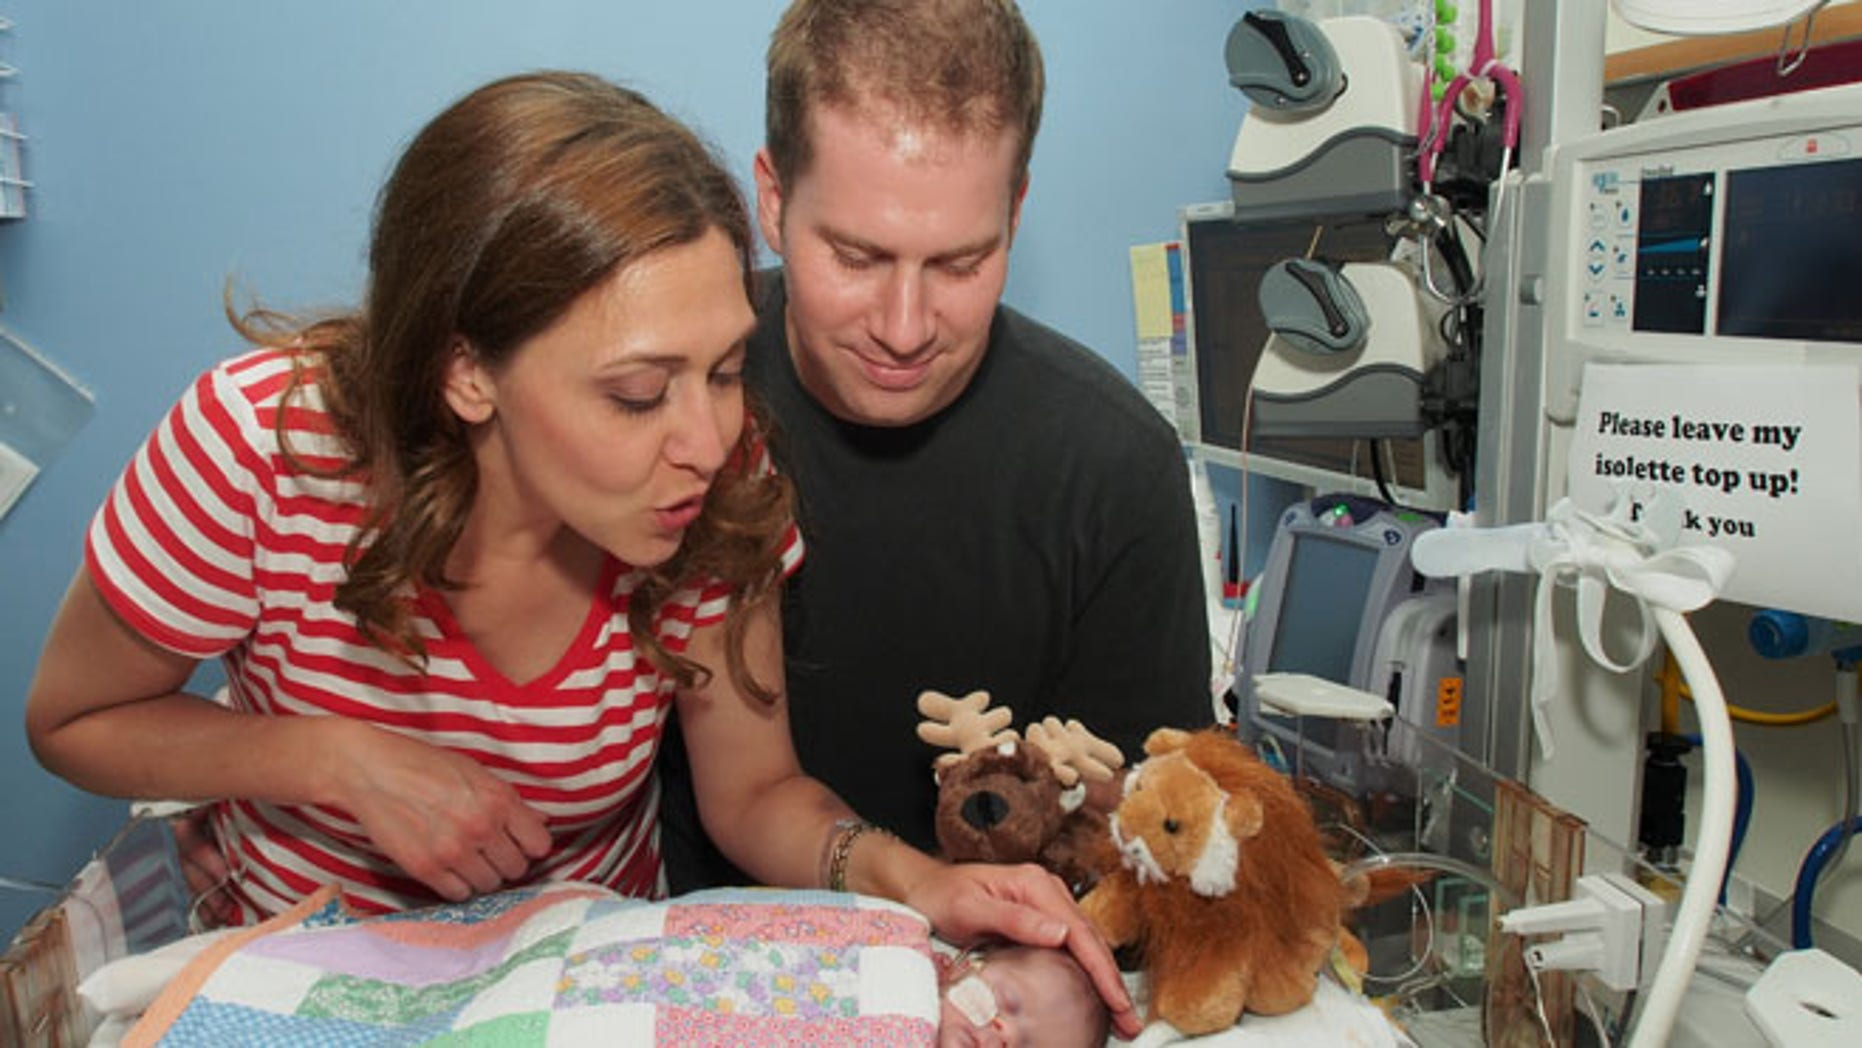 July 23, 2013: This file photo provided by the office of Rep. Jaime Herrera Beutler, R-Wash., shows Herrera Beutler, left, is with her husband, Dan Beutler, and their baby, Abigail Rose Beutler, at Lucile Packard Childrens Hospital in Palo Alto, Calif. (AP)